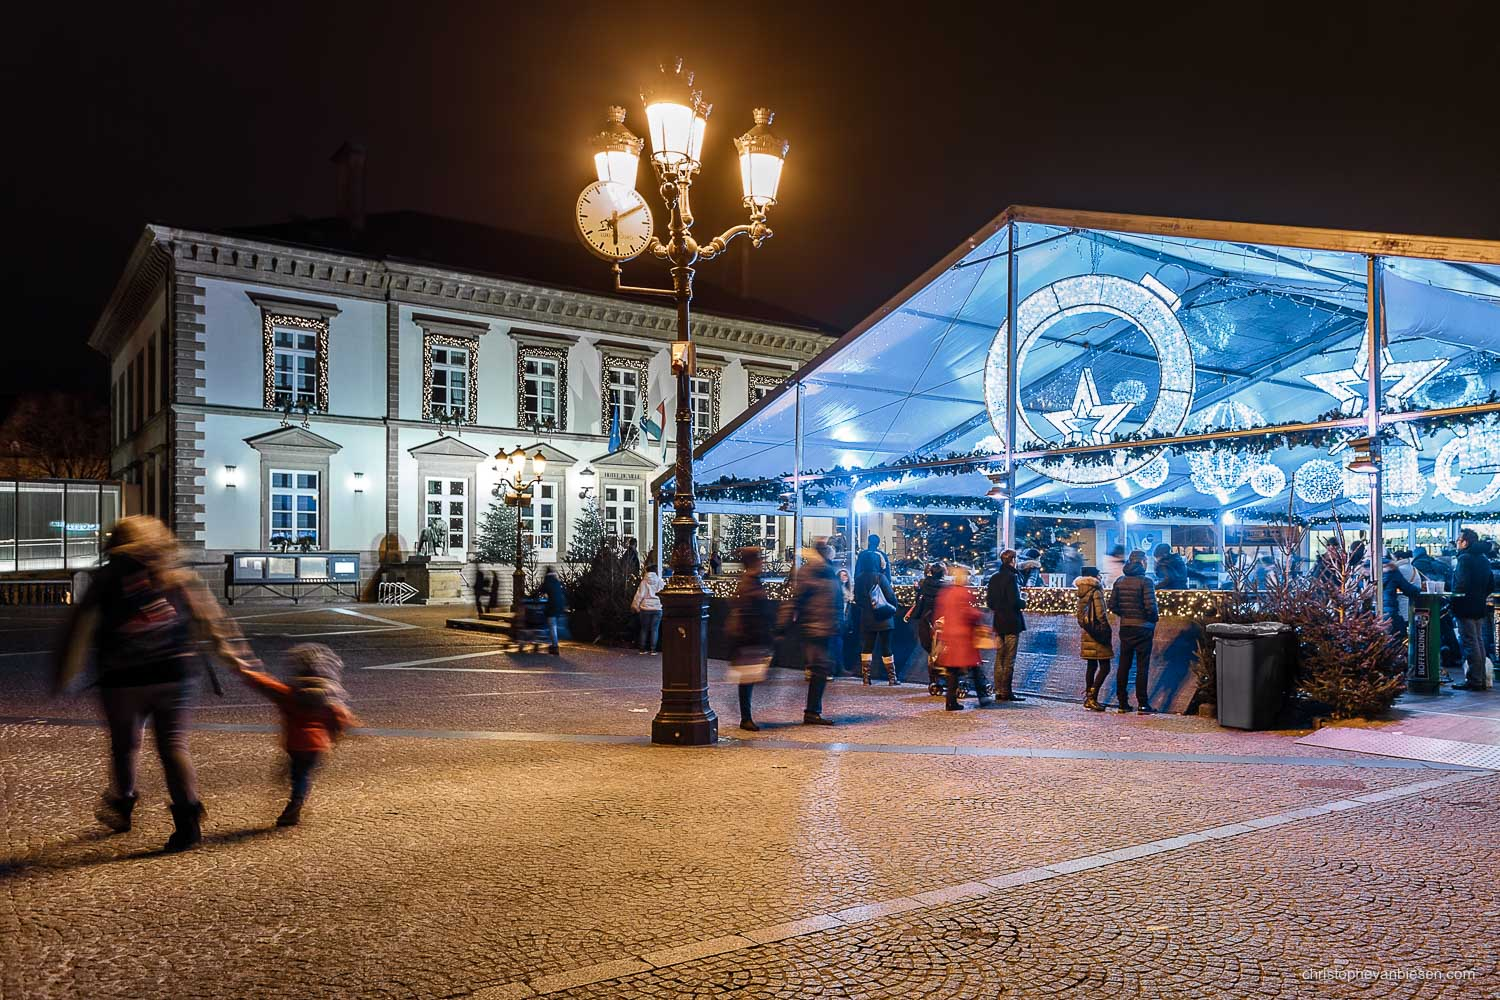 Christmas in Luxembourg - Christmas market in Luxembourg has a new ice rink attraction - Luxembourgers on Ice